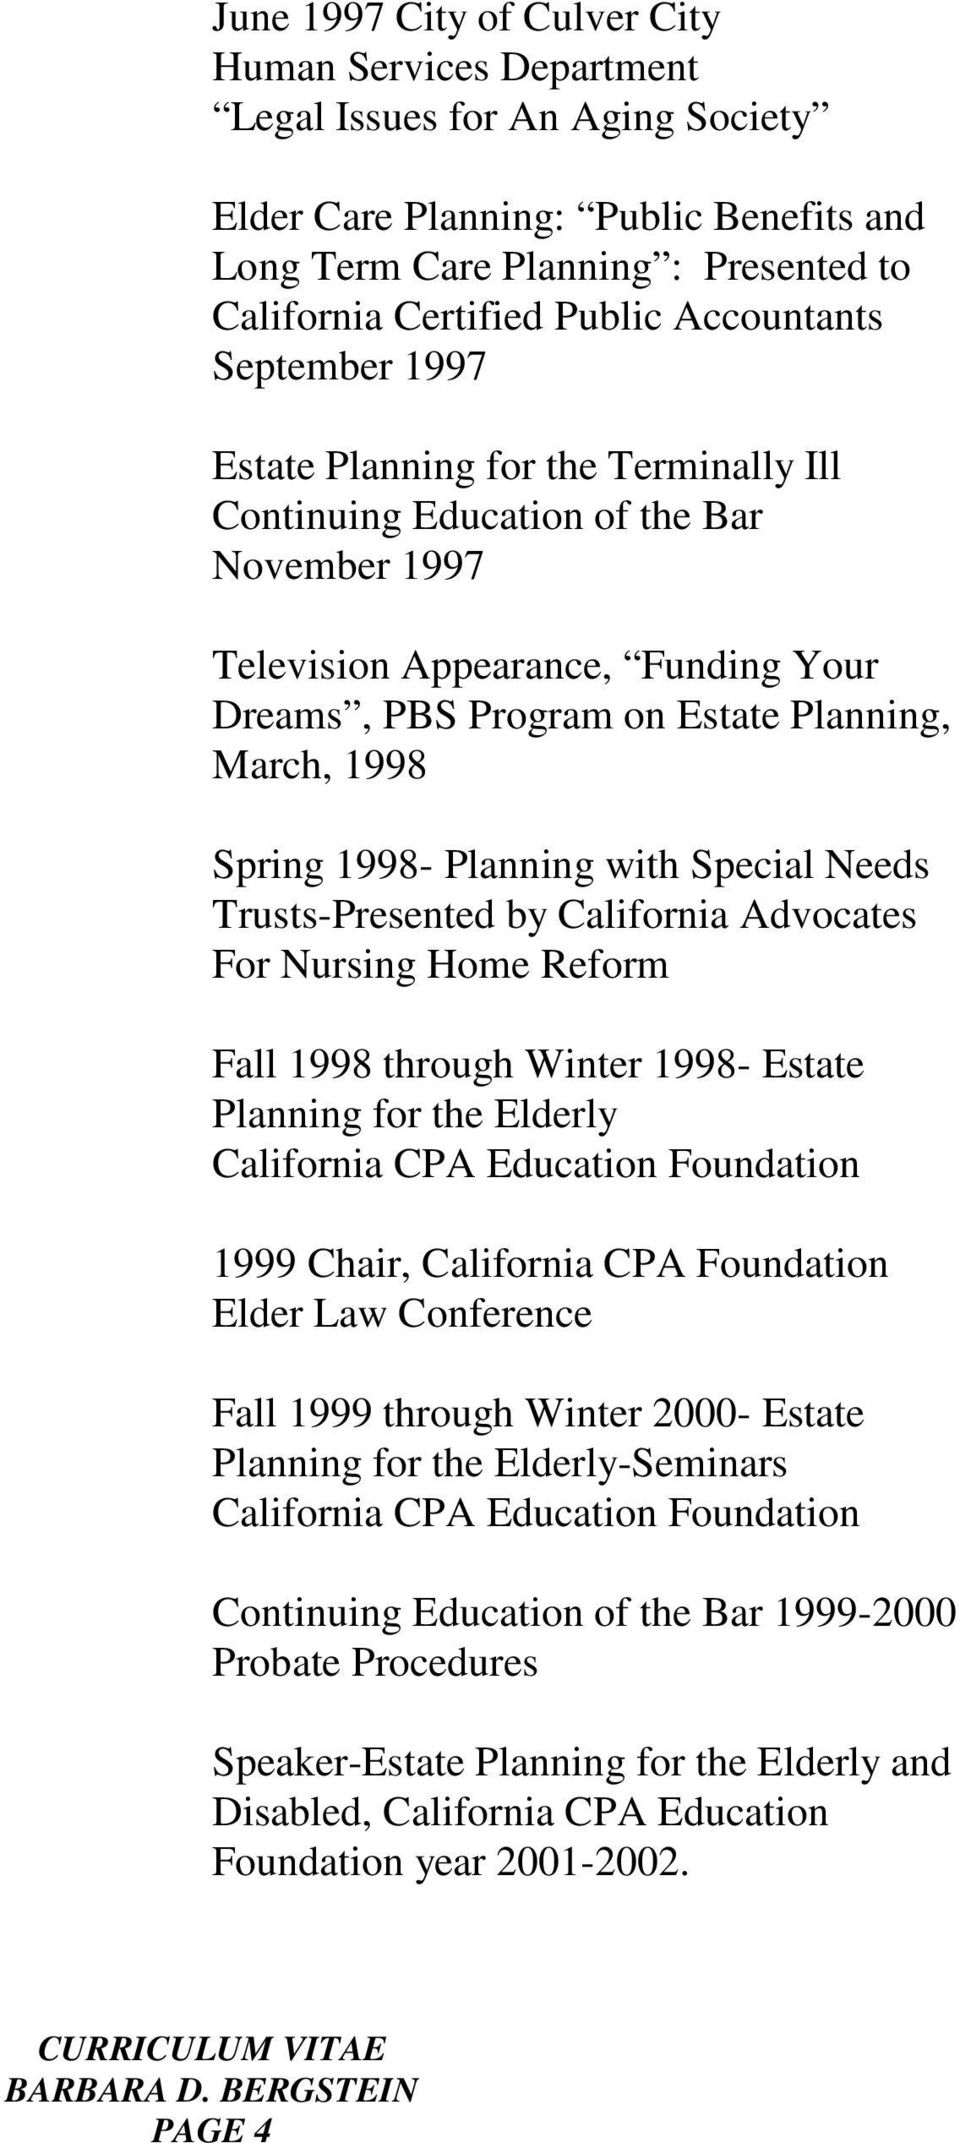 Spring 1998- Planning with Special Needs Trusts-Presented by California Advocates For Nursing Home Reform Fall 1998 through Winter 1998- Estate Planning for the Elderly California CPA Education